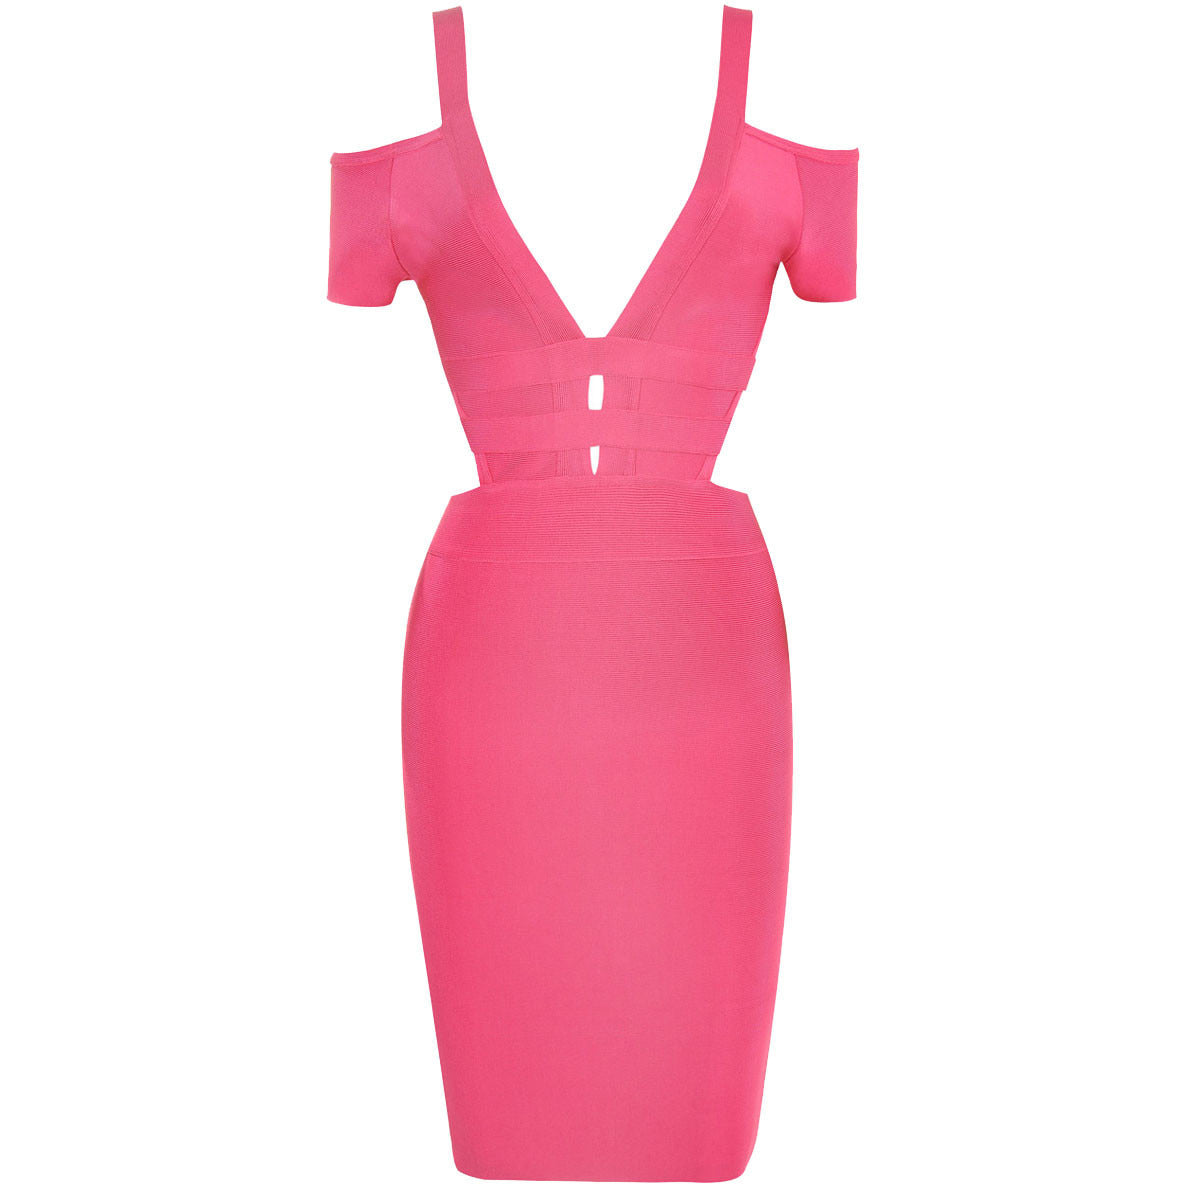 Off Shoulder Cut Out Bandage Dress LAVELIQ SALE - LAVELIQ - 5